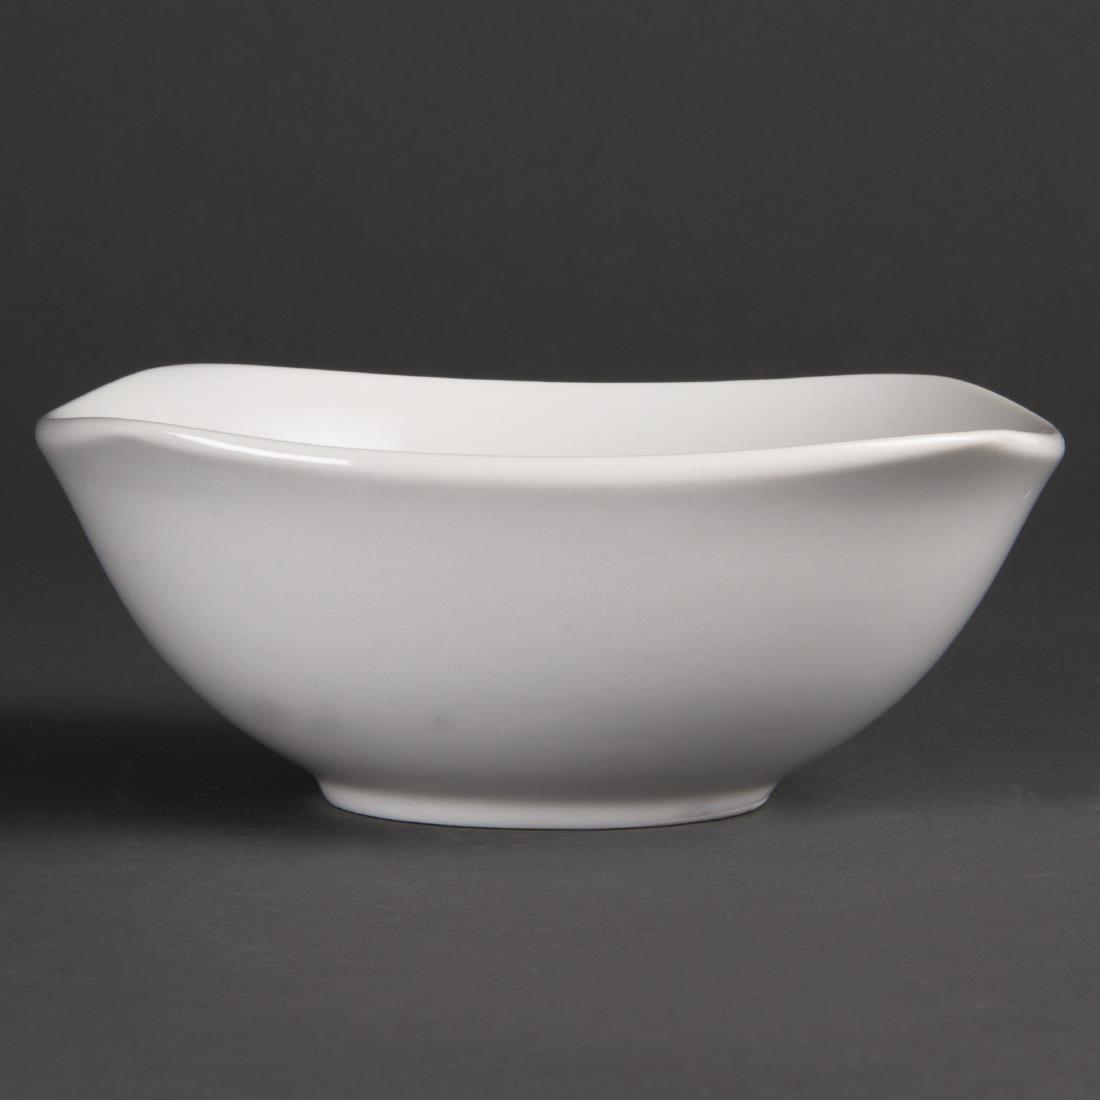 Olympia Whiteware Rounded Square Bowls 180mm